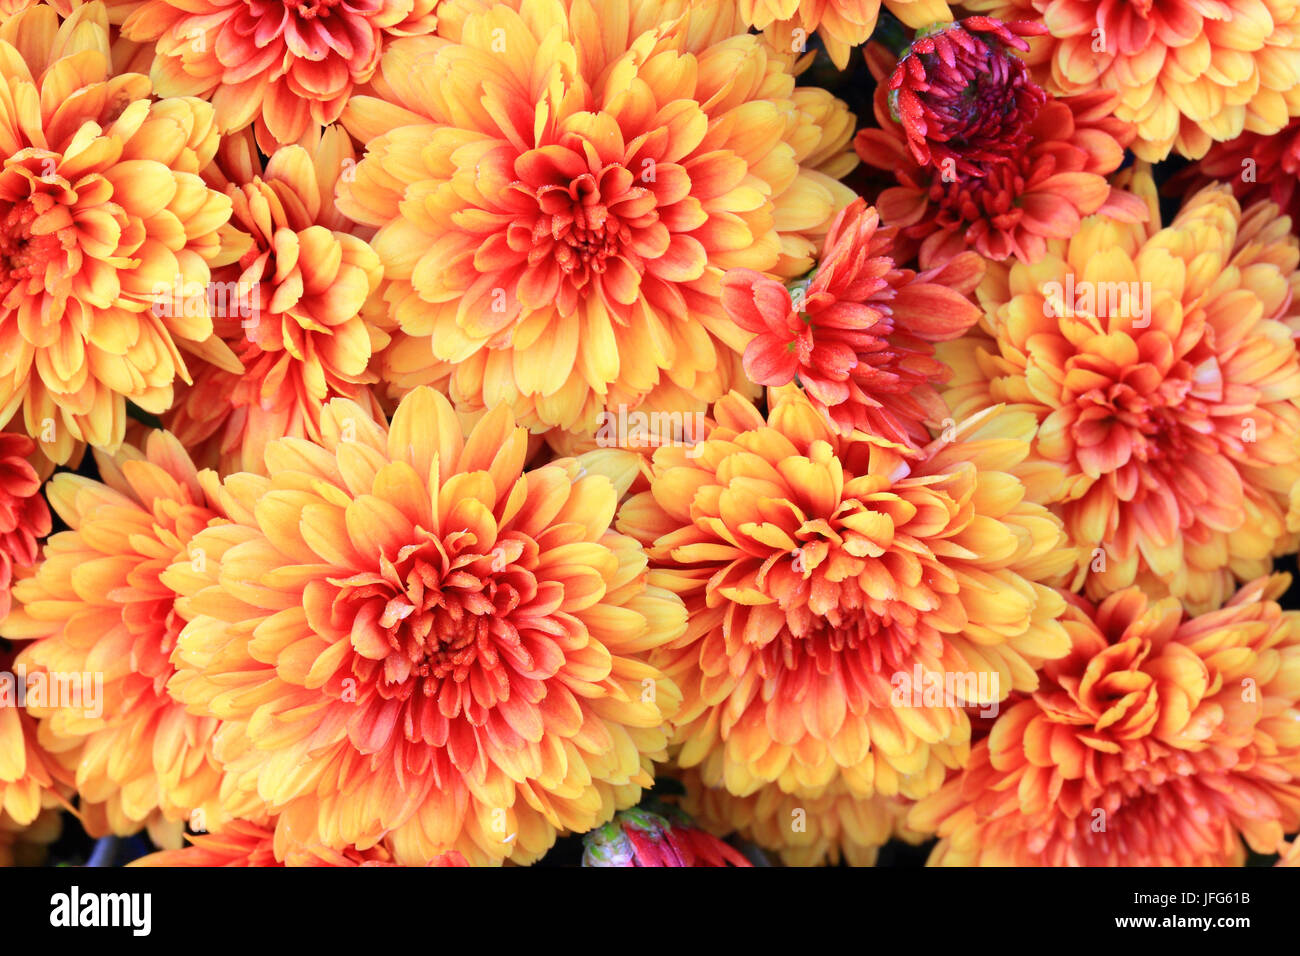 Blooms of Colorful Fall (Autumn) Mums - Stock Image